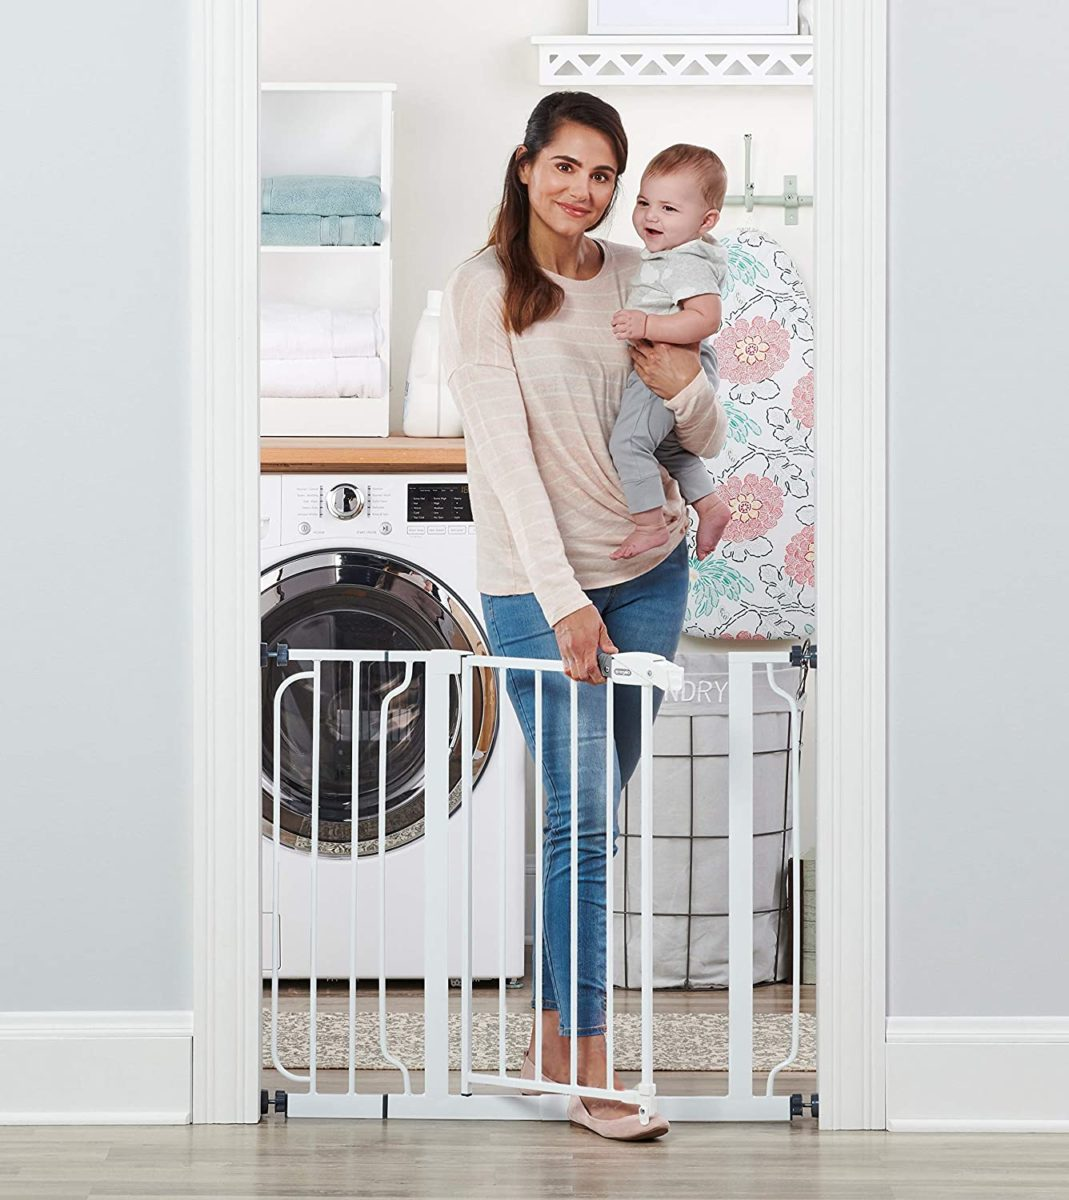 43 of the best products for moms and babies that will help you feel prepared | parenting questions | mamas uncut 81awjzbanjl. sl1500